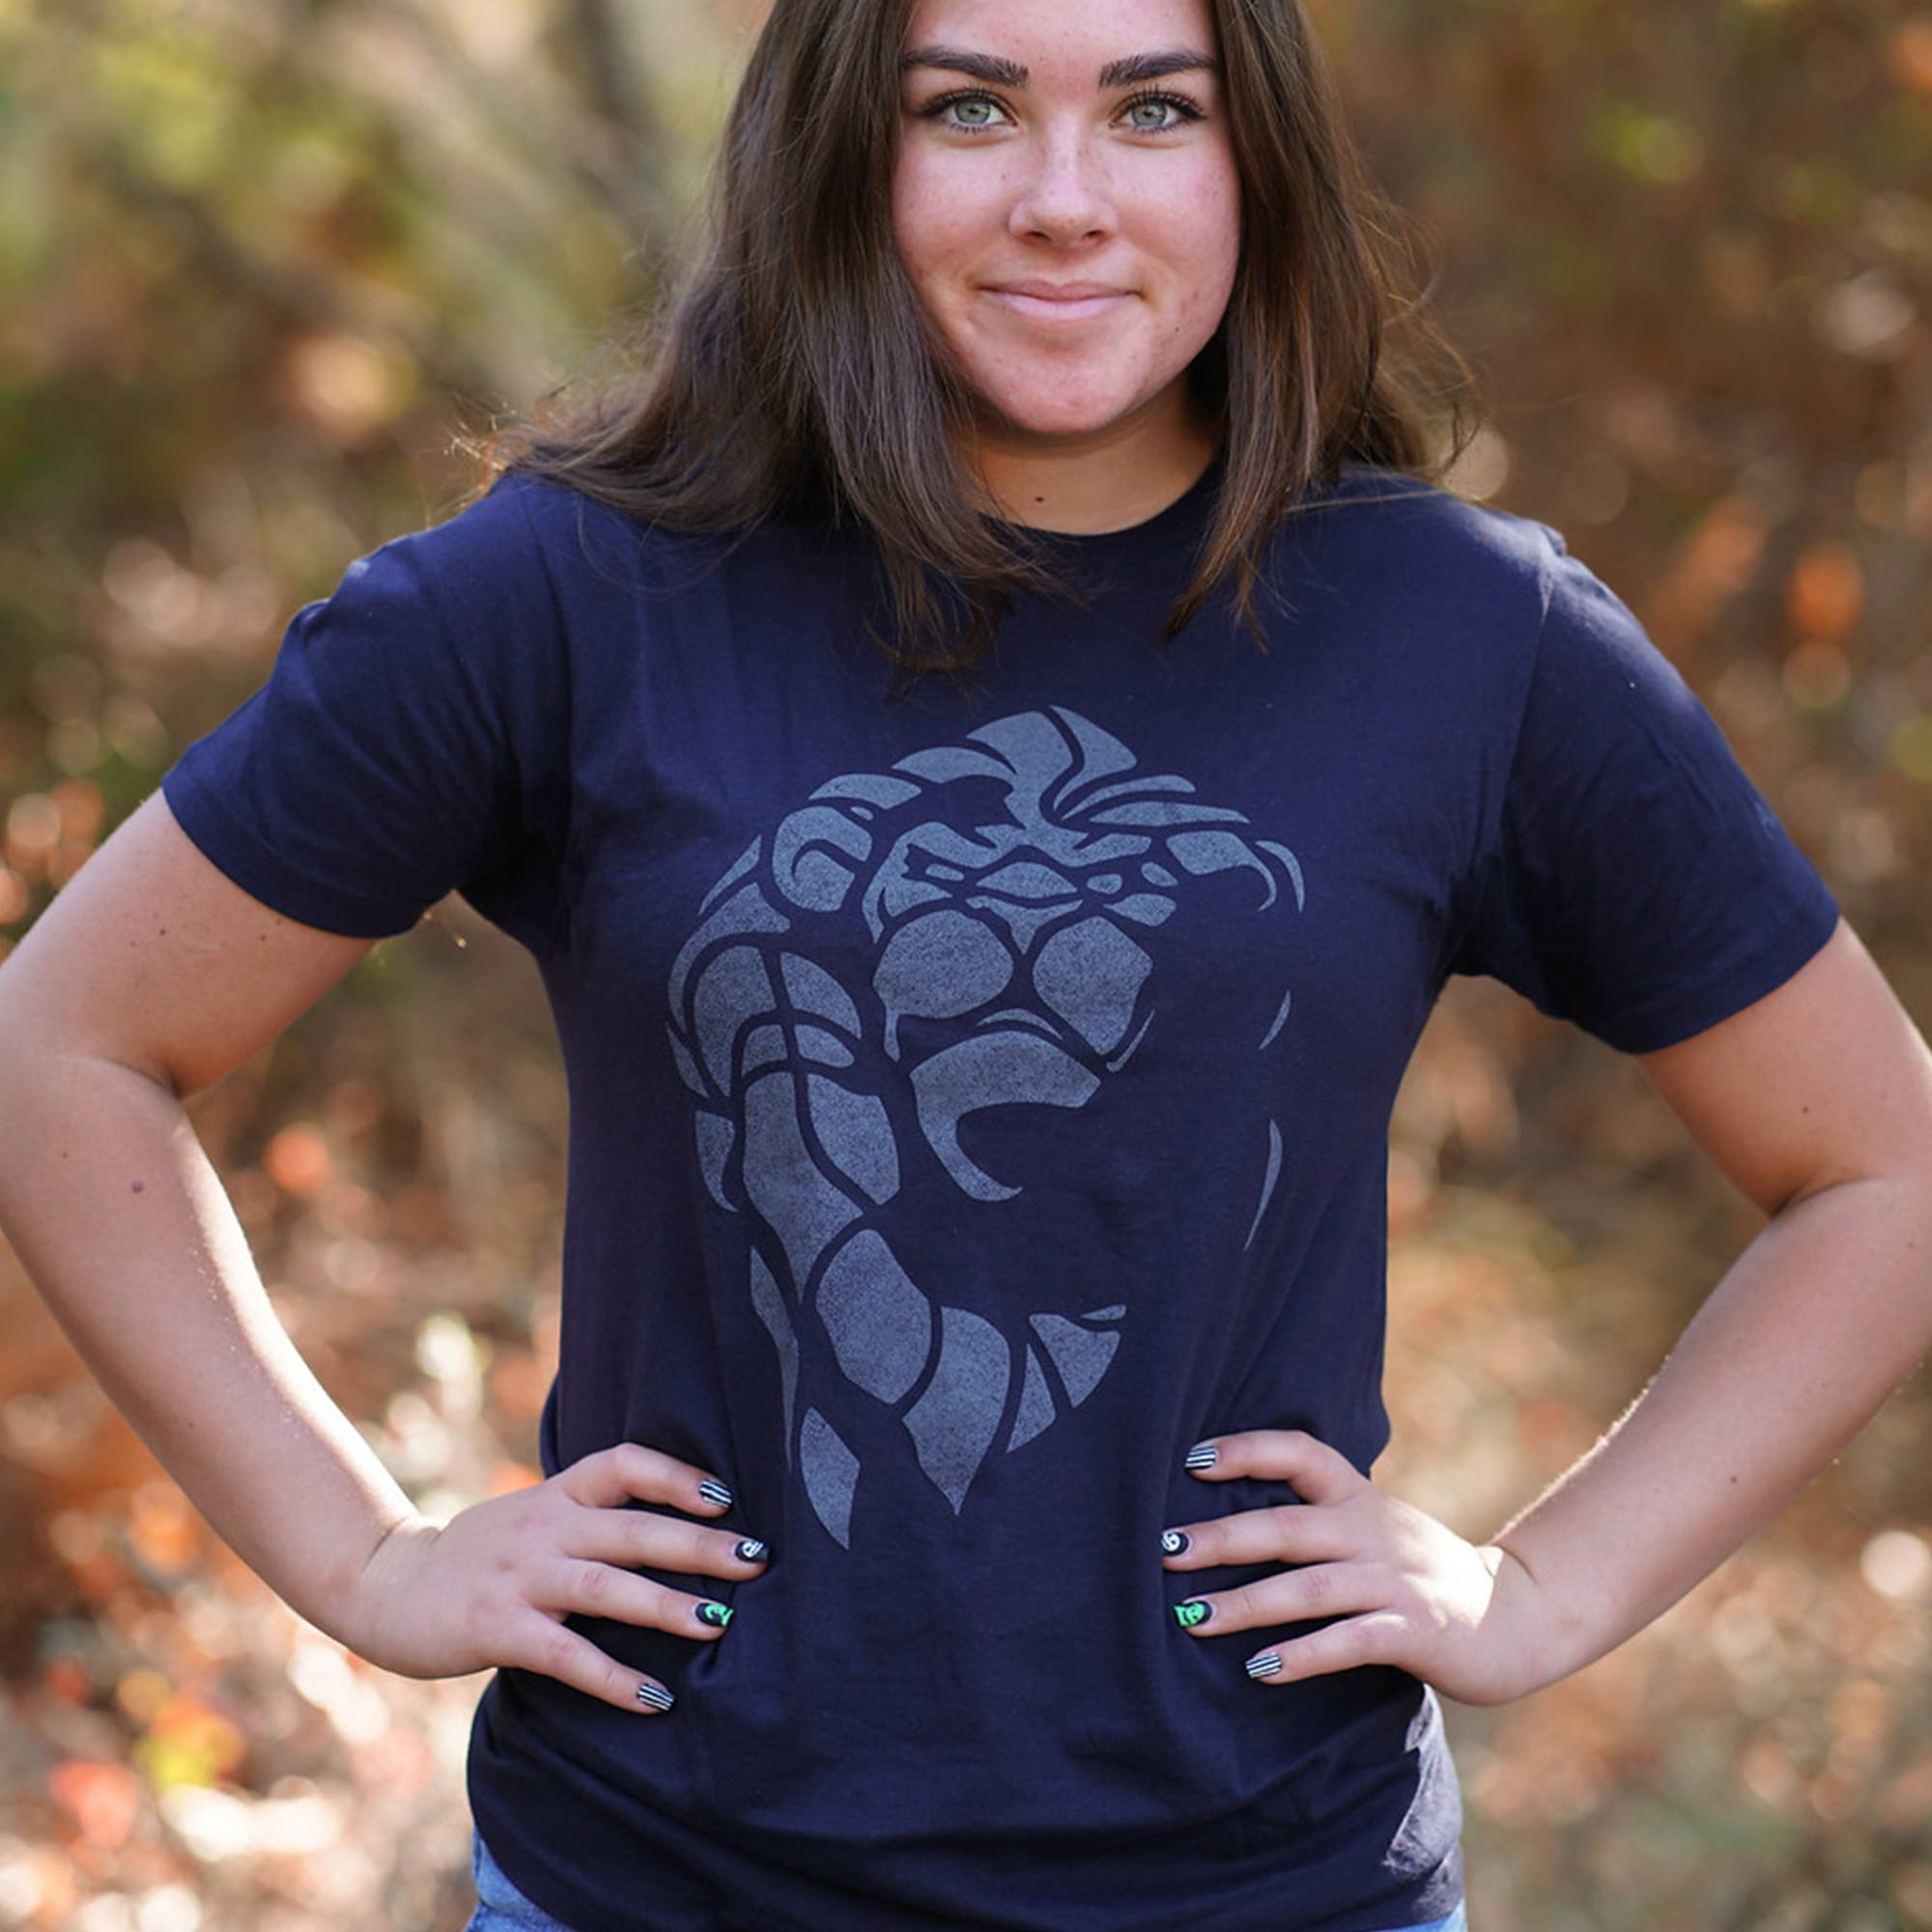 A model wearing a World of Warcraft premium tee